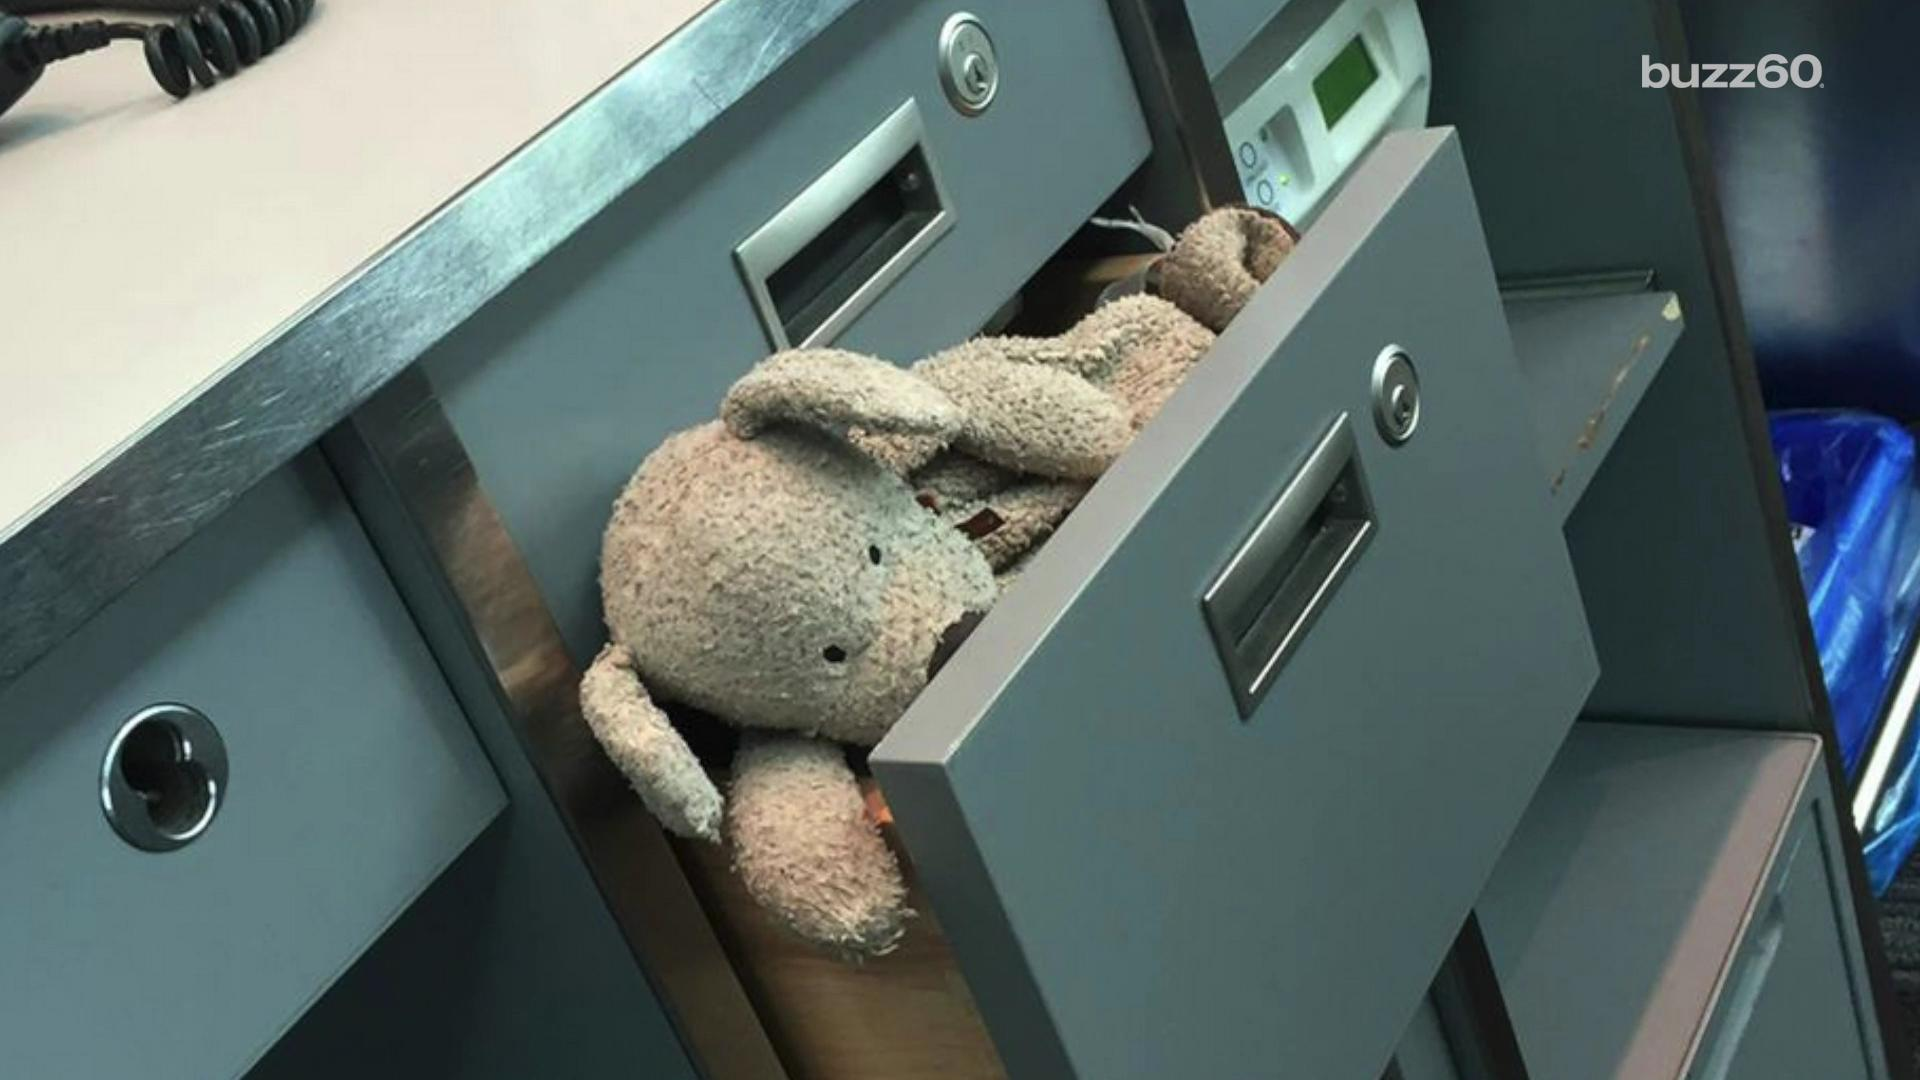 Toronto airport employees take lost stuffed animal on an adventure